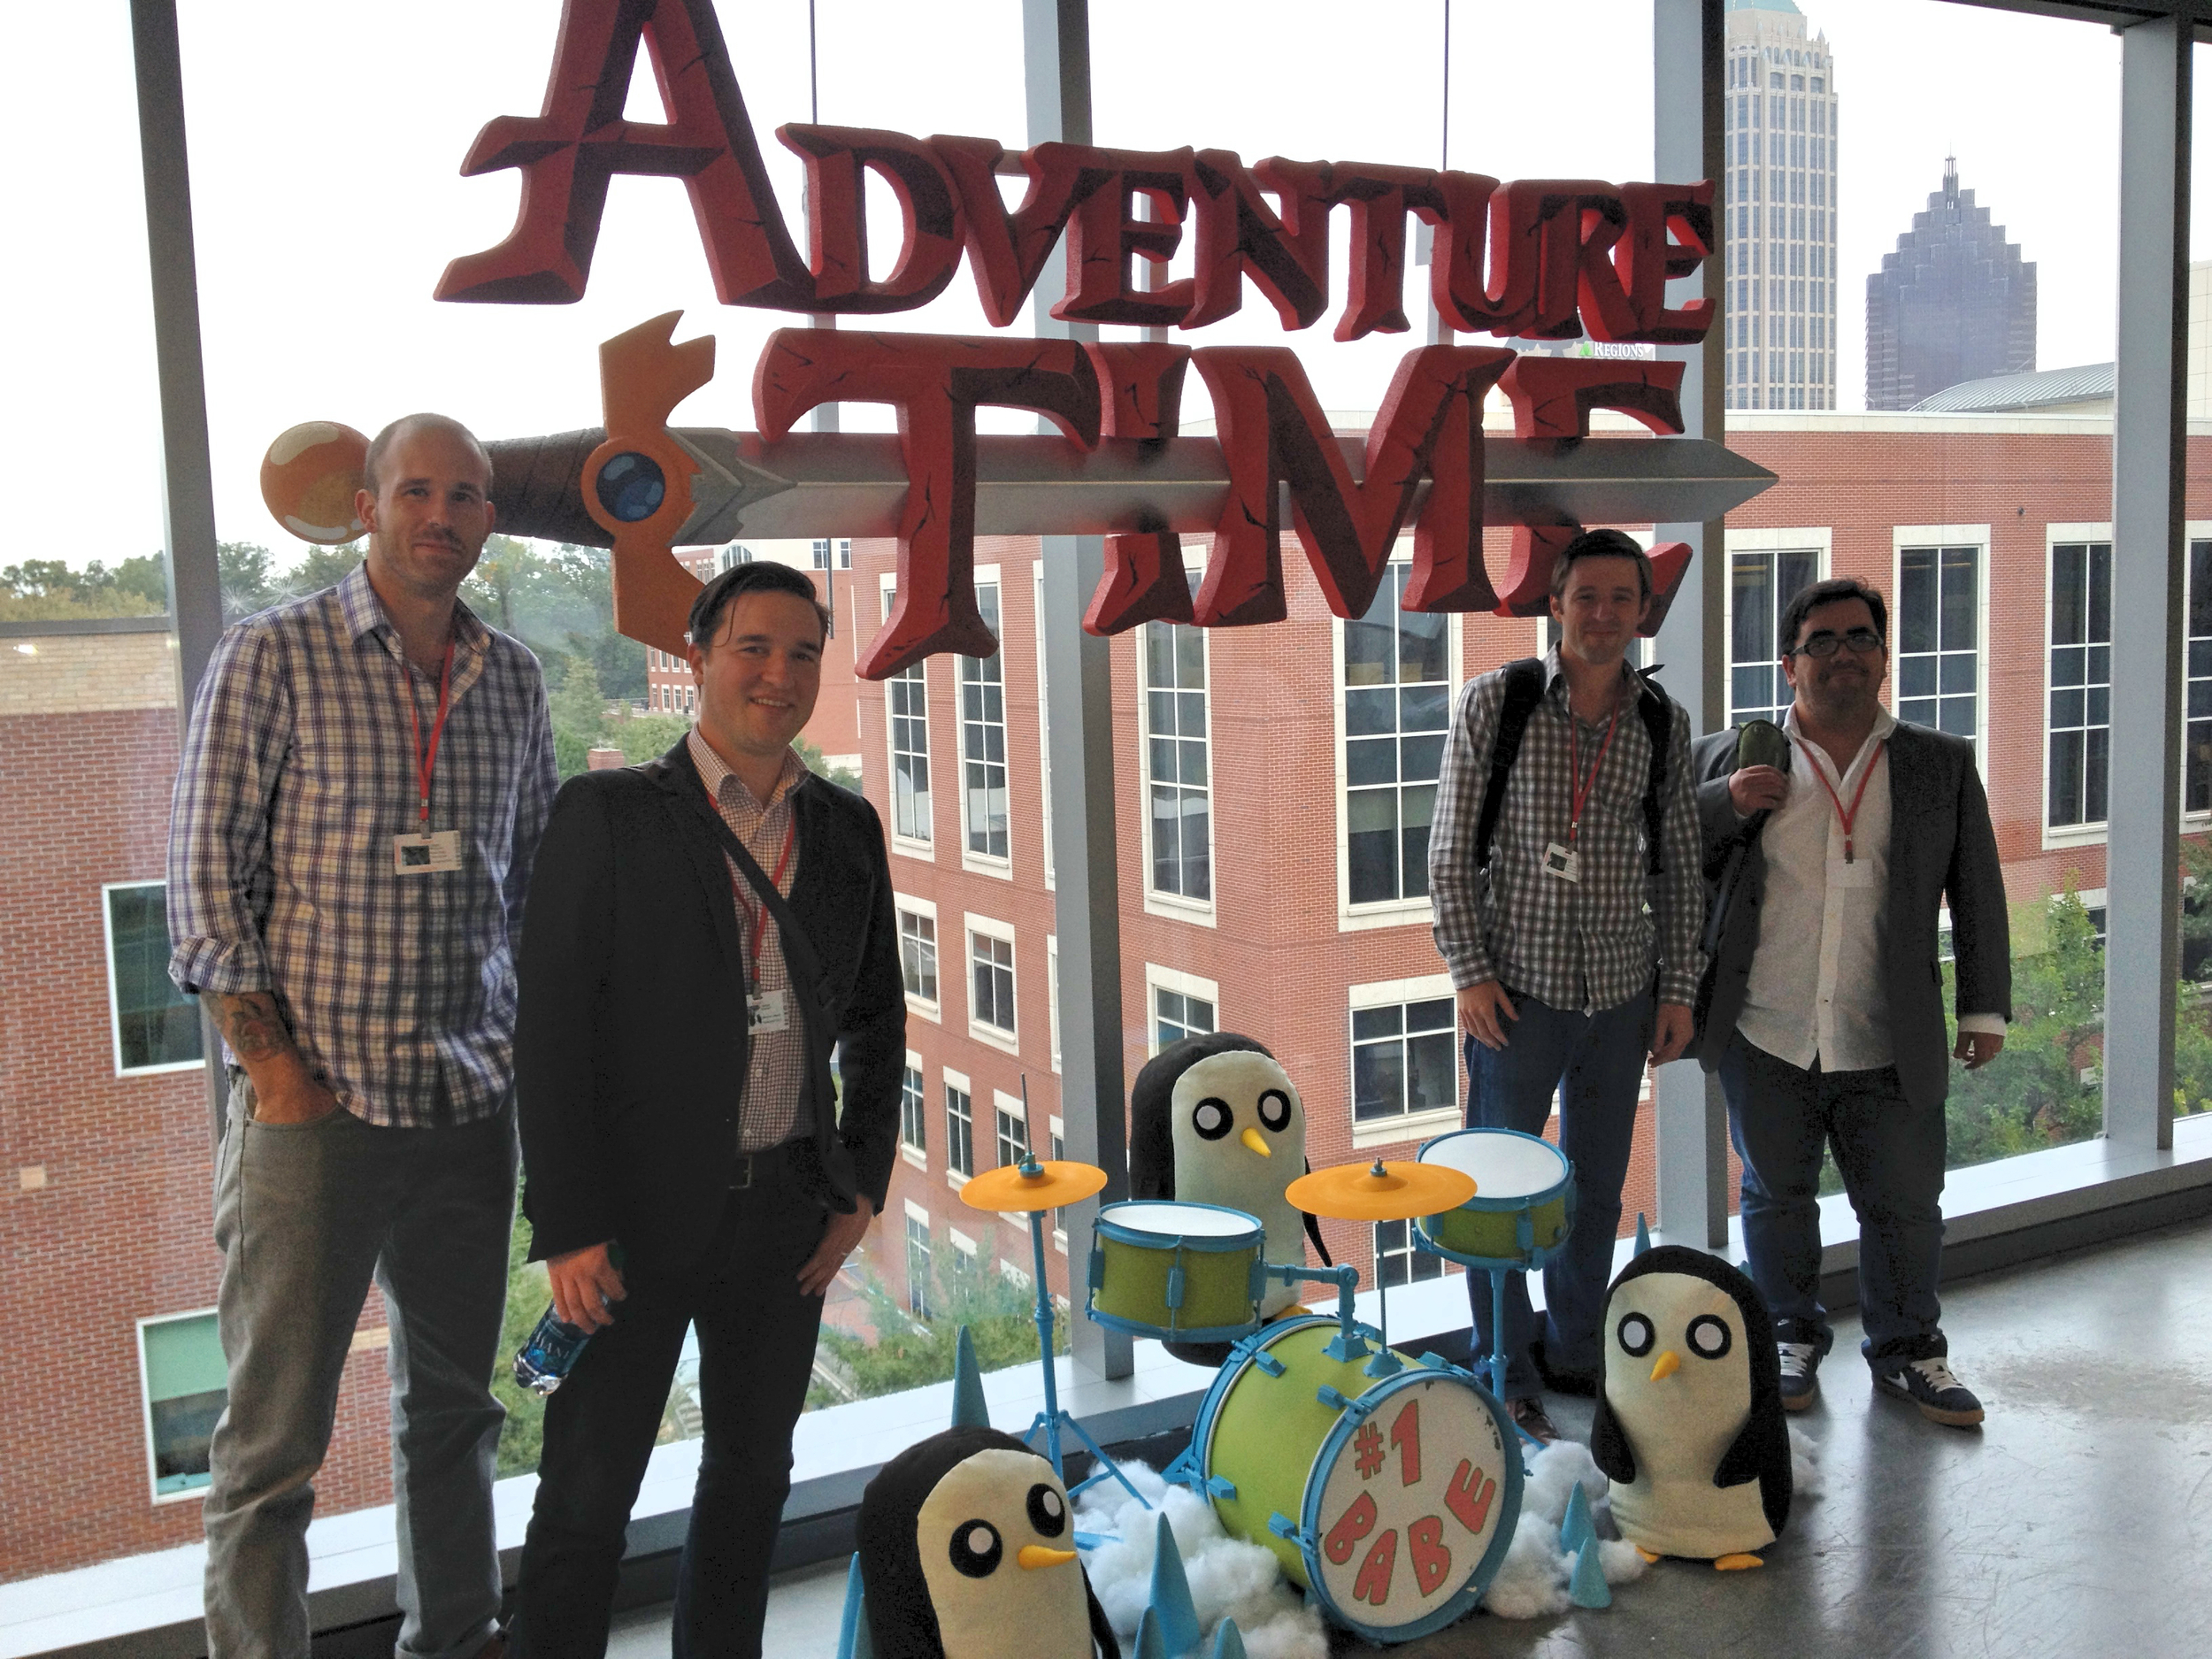 Daniel, Rob, Robin & Bradley at the Cartoon Network offices in Atlanta, GA in 2014.